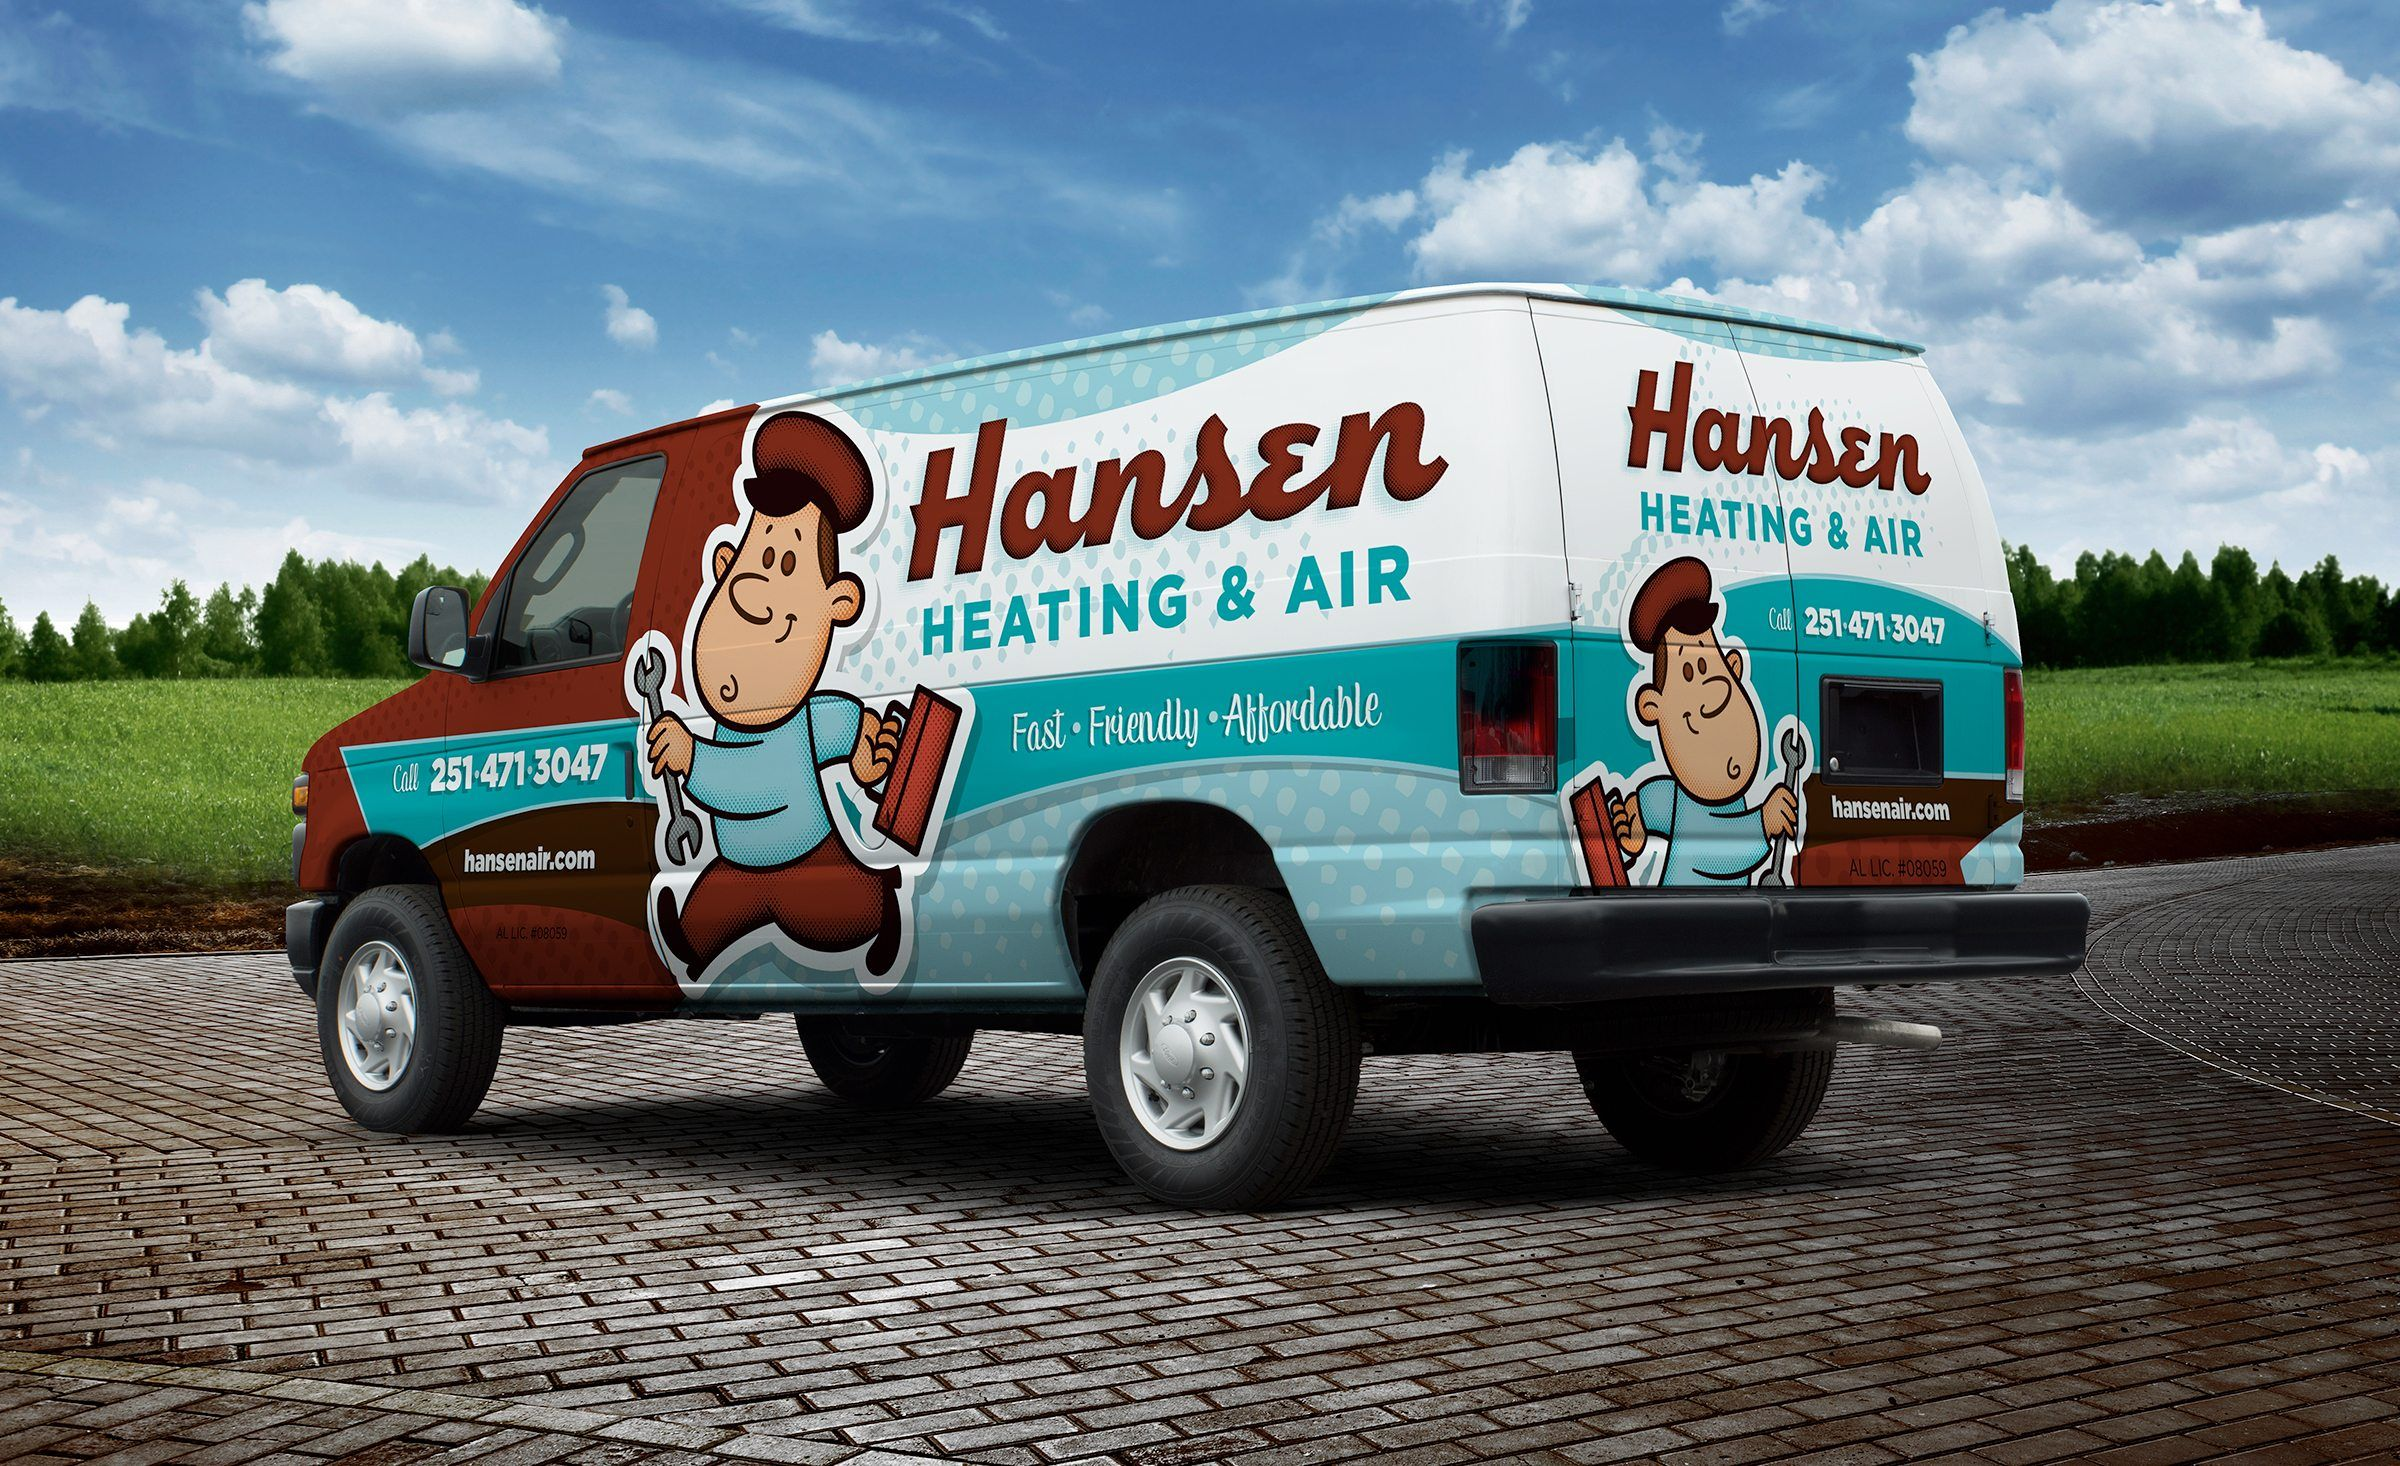 Retro Themed Hvac Truck Wrap Design And Fleet Branding For A Heating And Air Car Wrap Cool Trucks Vehicle Signage